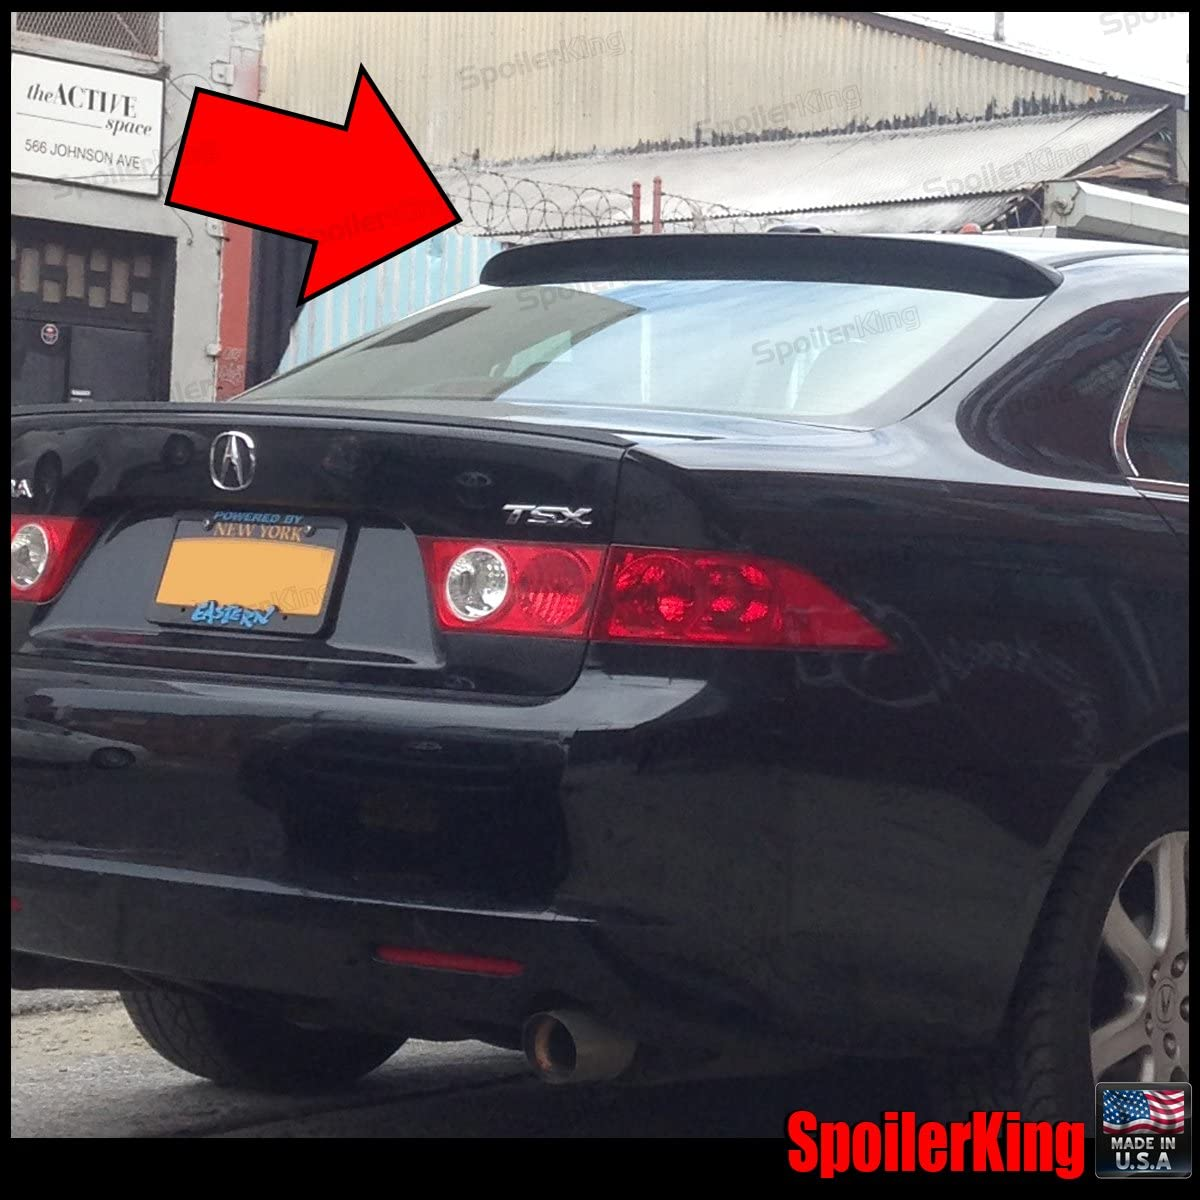 284R compatible with Acura RSX 2002-2006 DC5 Spoiler King Roof Spoiler